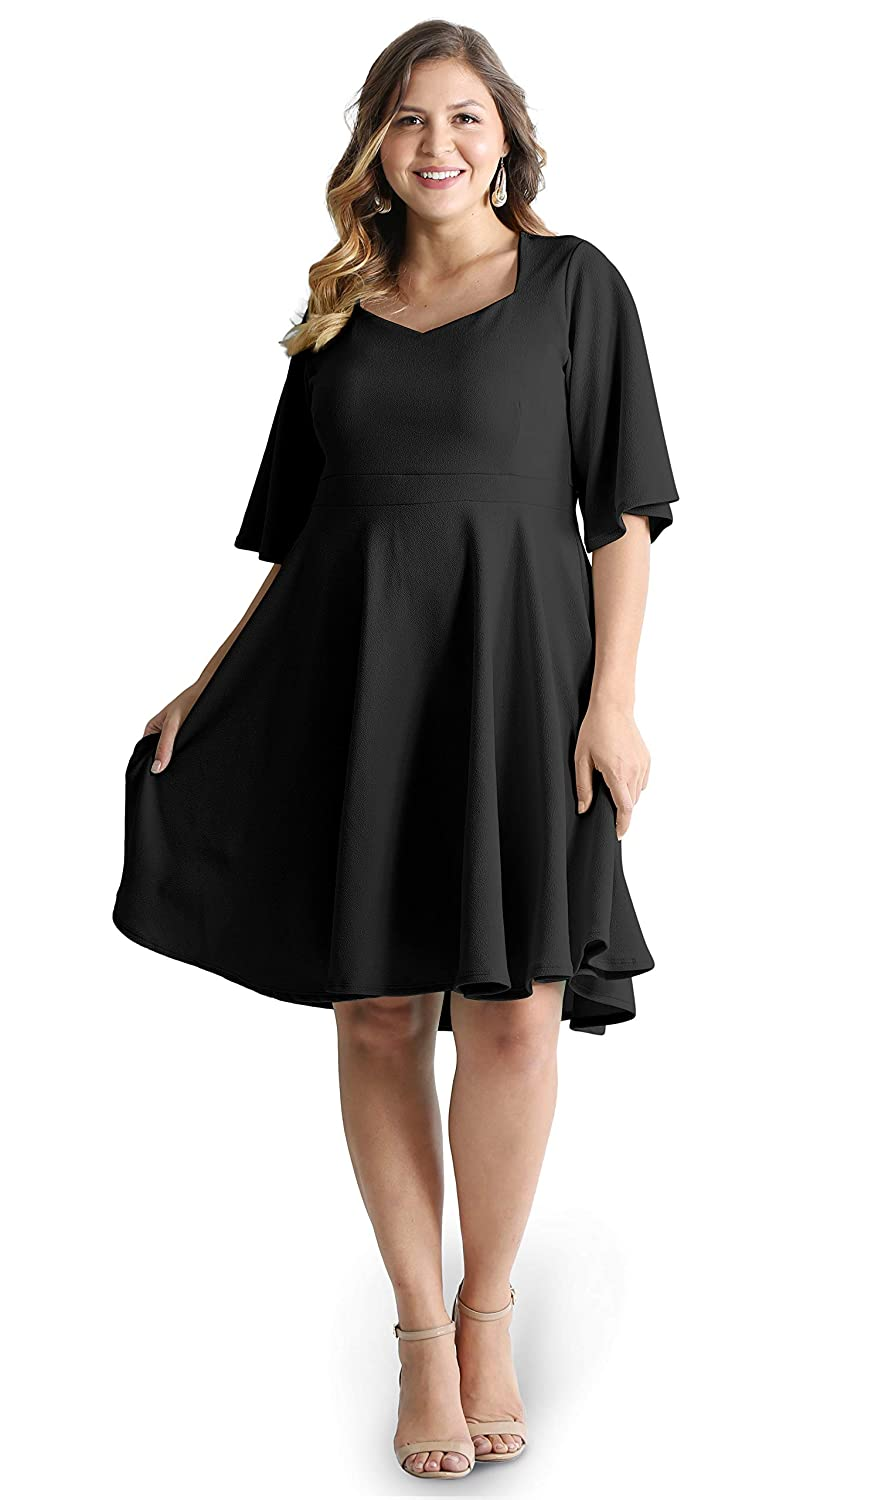 Womens Plus Size Cocktail Party Wedding Fit Flare Dresses Made